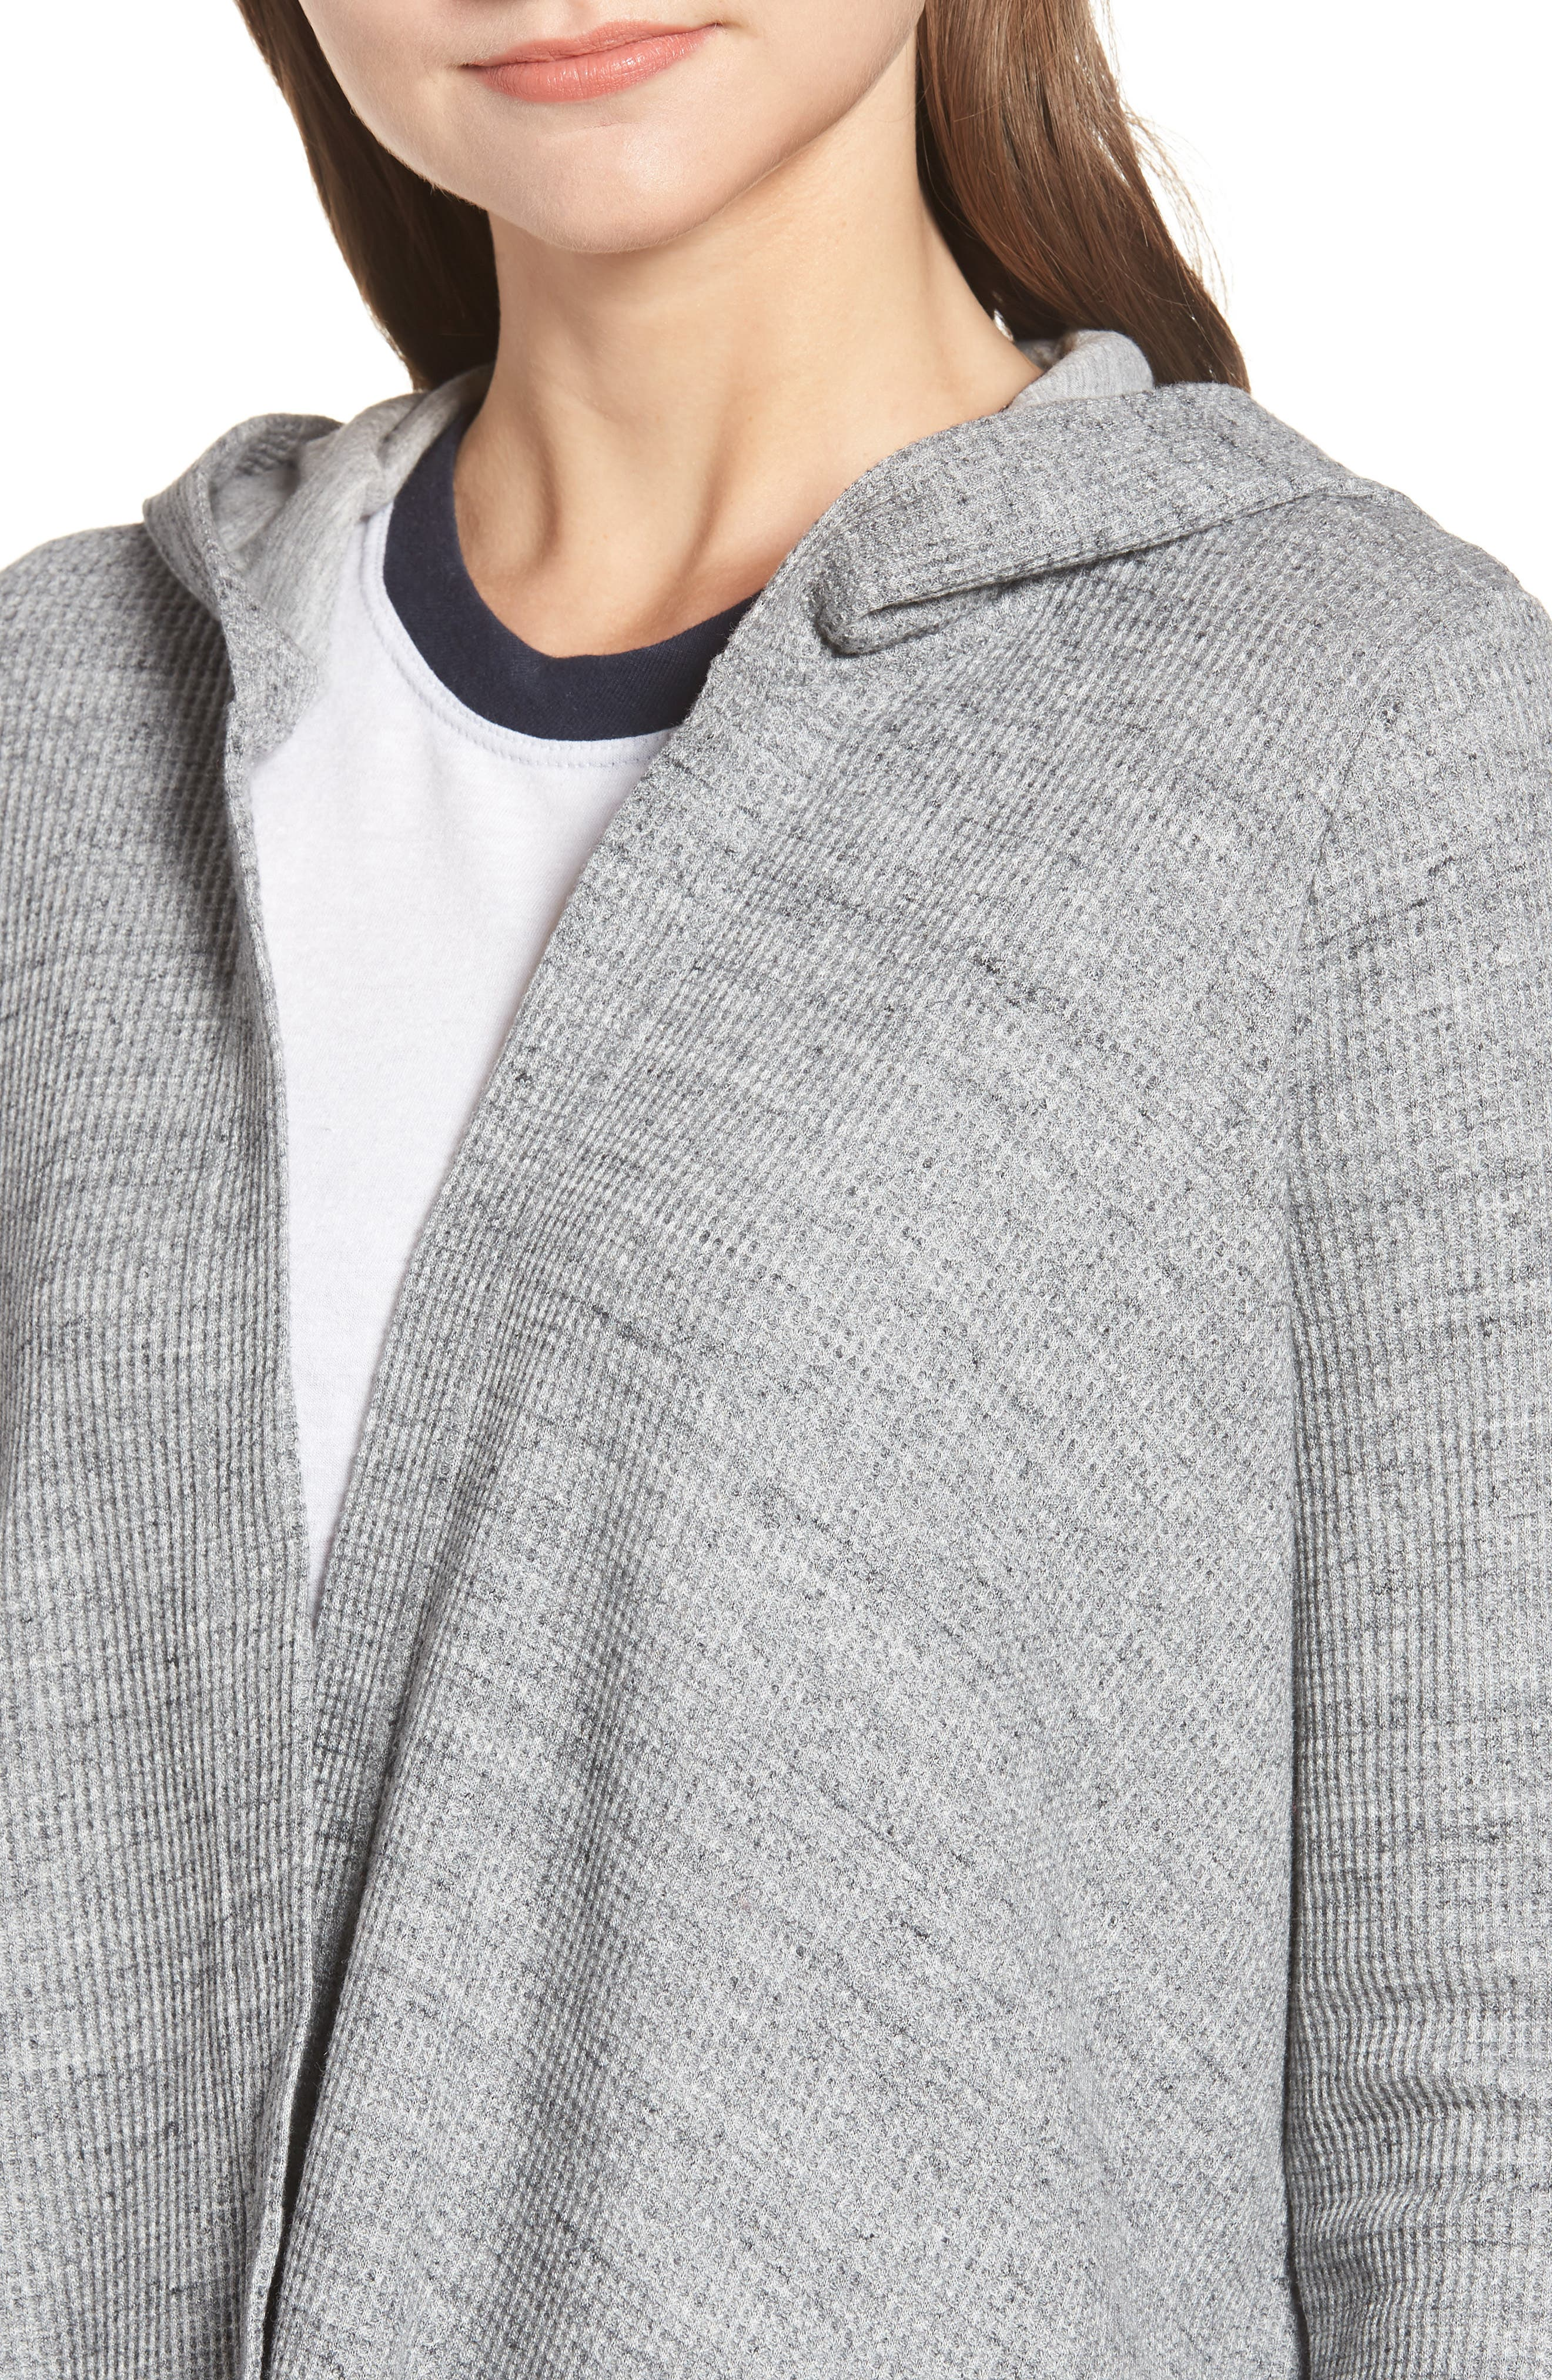 Thermal Hooded Cardigan,                             Alternate thumbnail 4, color,                             GRAVEL HEATHER GREY